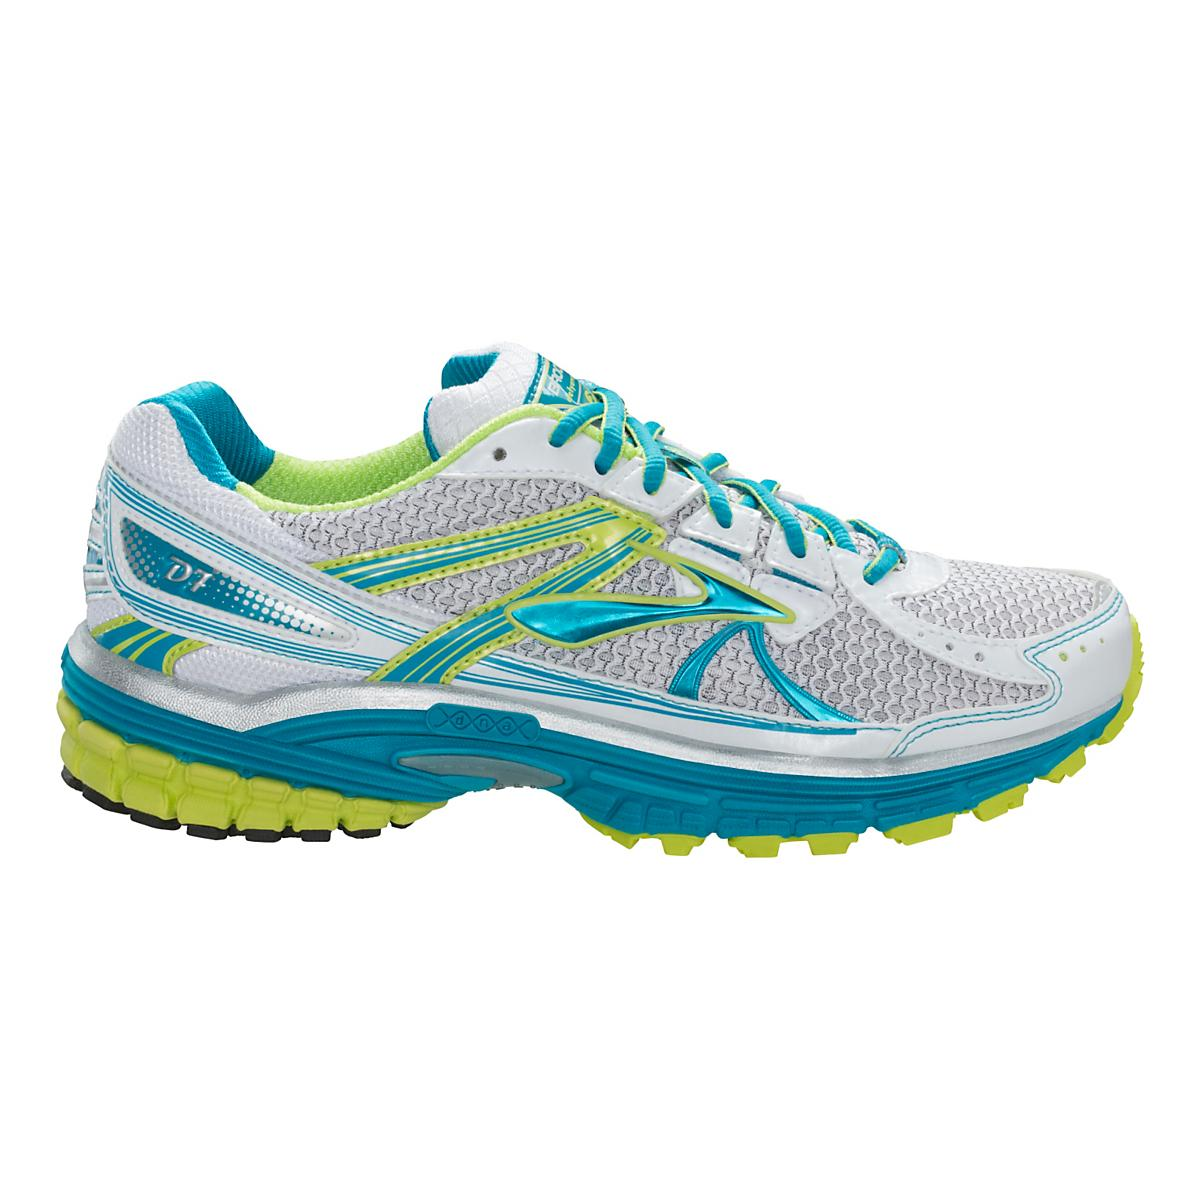 5cf1018a982c0 Womens Brooks Defyance 7 Running Shoe at Road Runner Sports